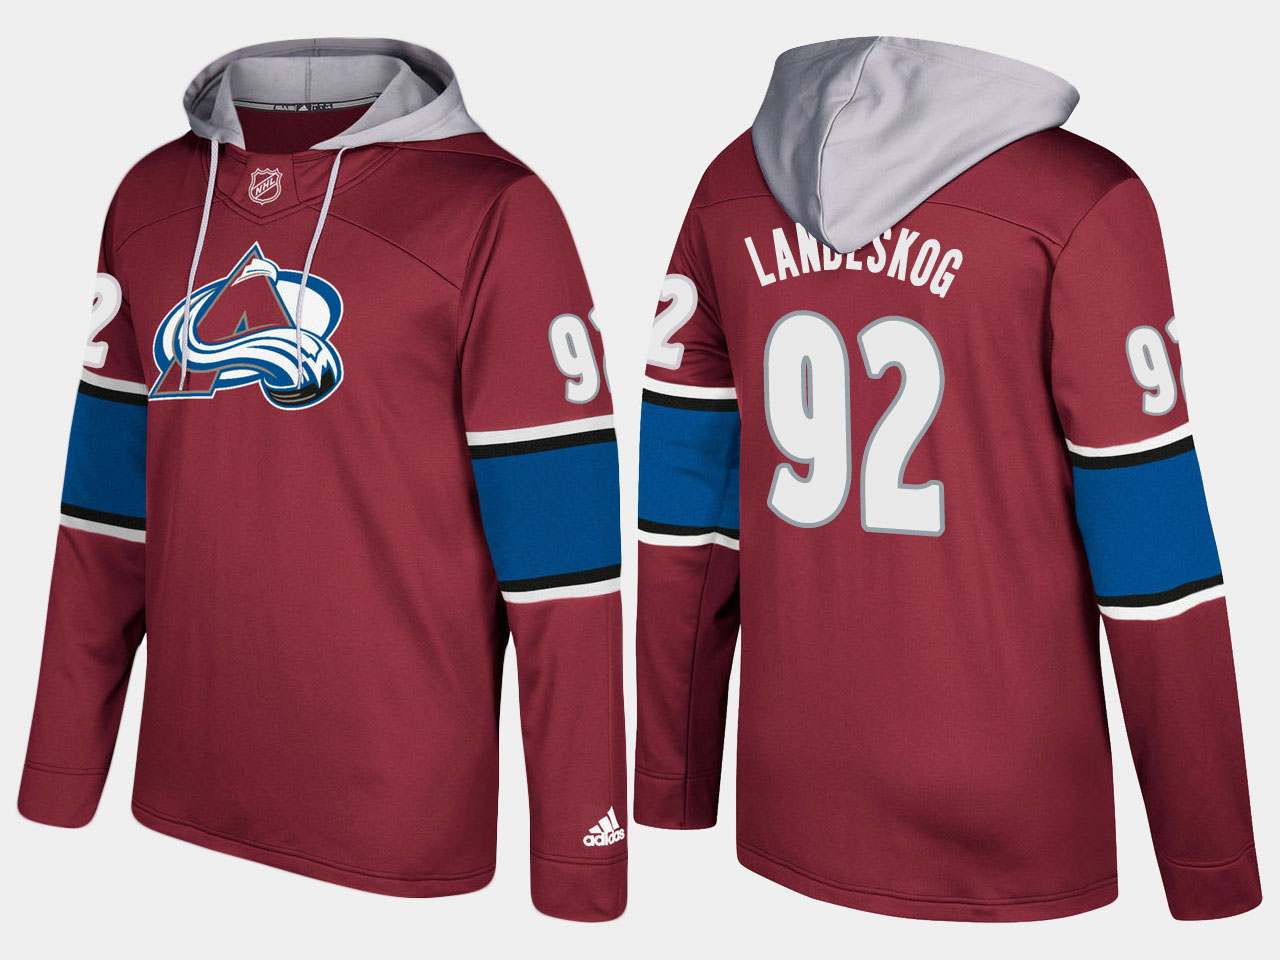 Men NHL Colorado avalanche 92 gabriel landeskog burgundy hoodie